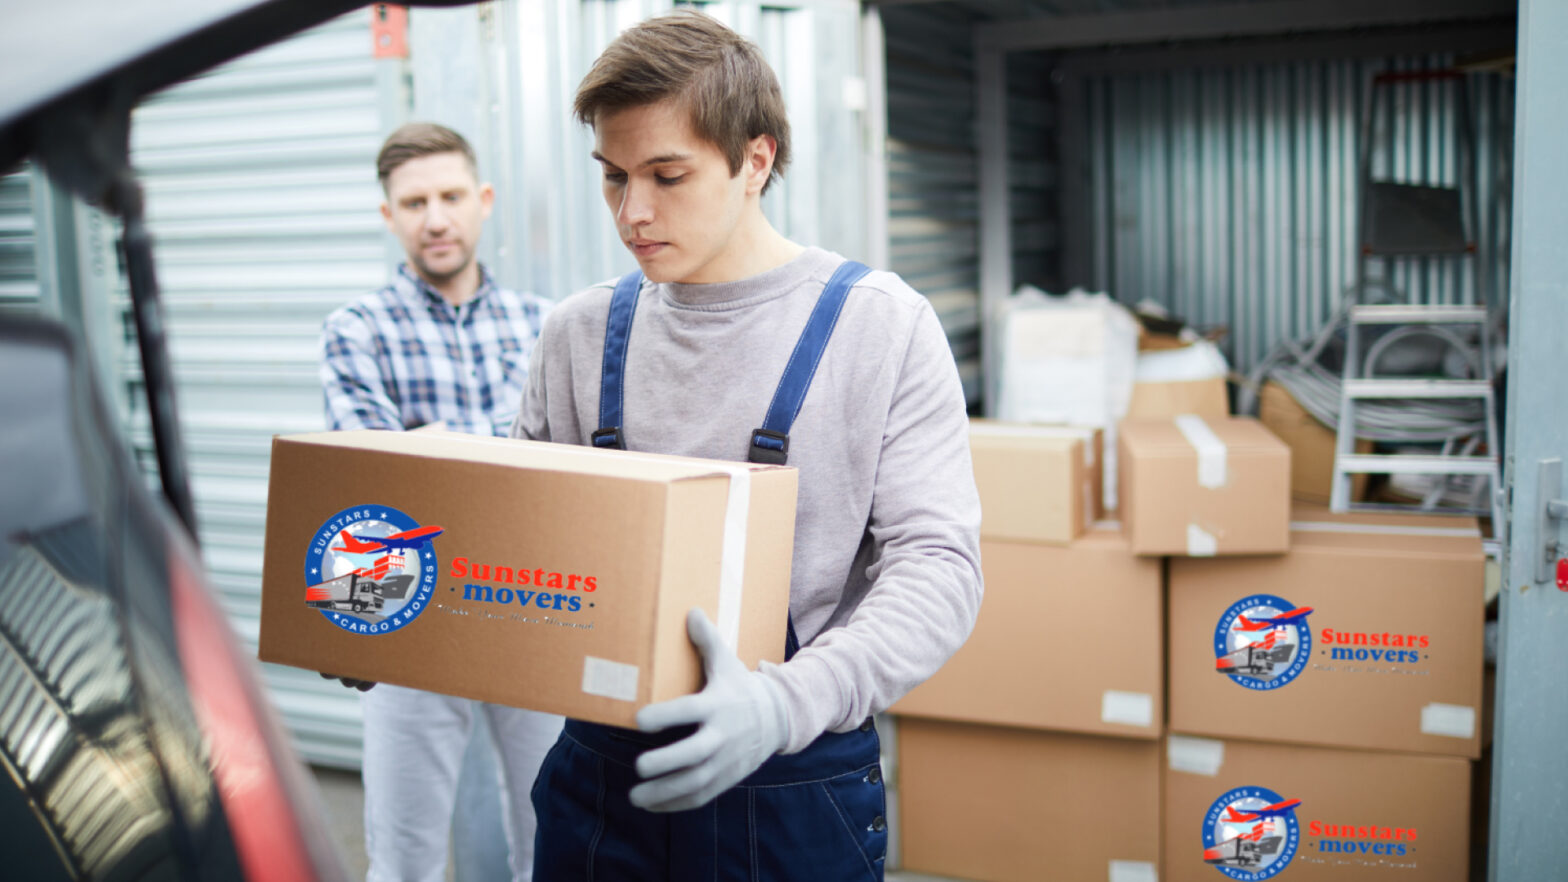 Best home movers in UAE at sunstars movers